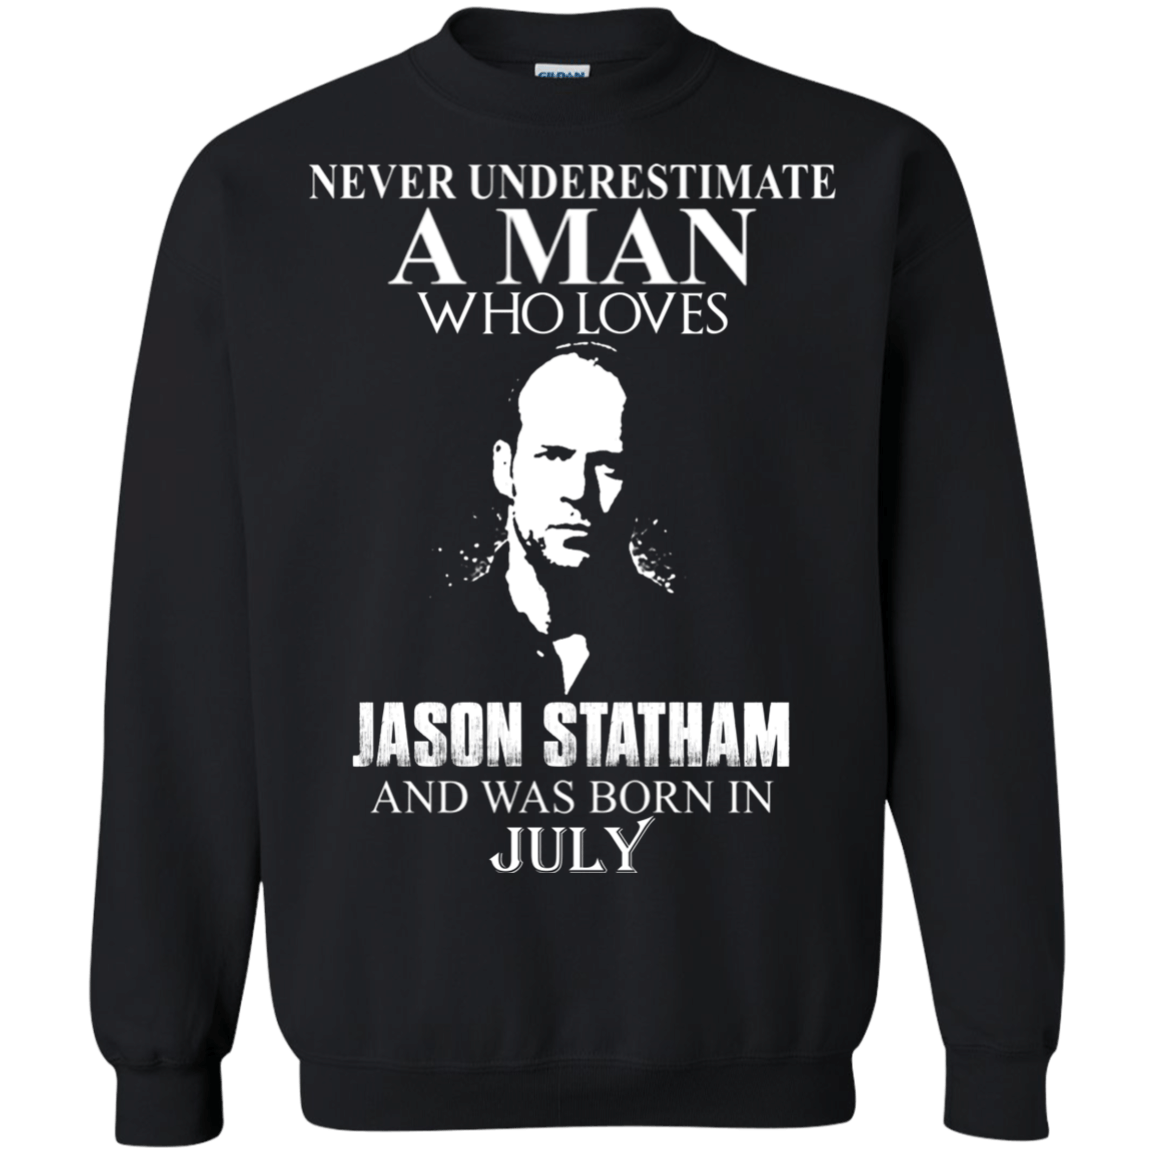 Never underestimate A Man who loves Jason Statham and was born in July